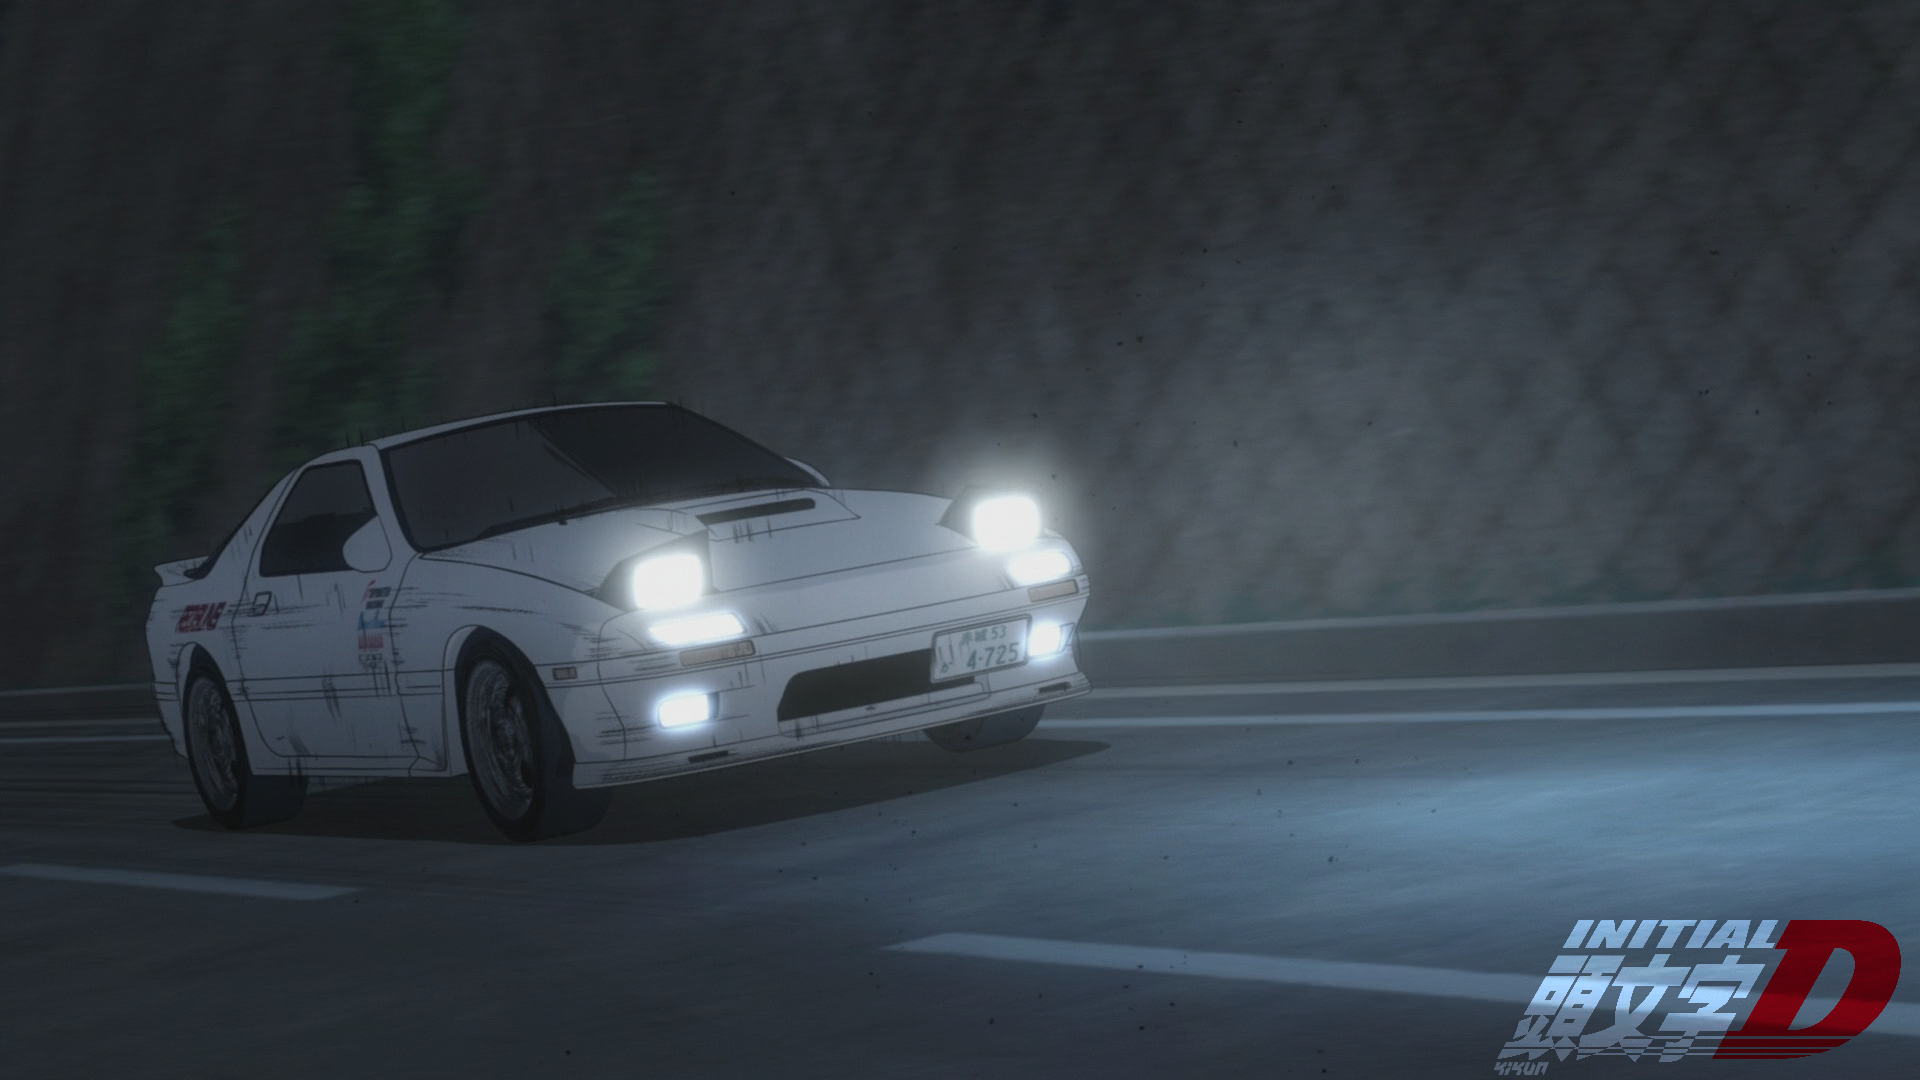 Made a wallpaper collection for Initial D fans [Part 1][1080p] [x 1920x1080